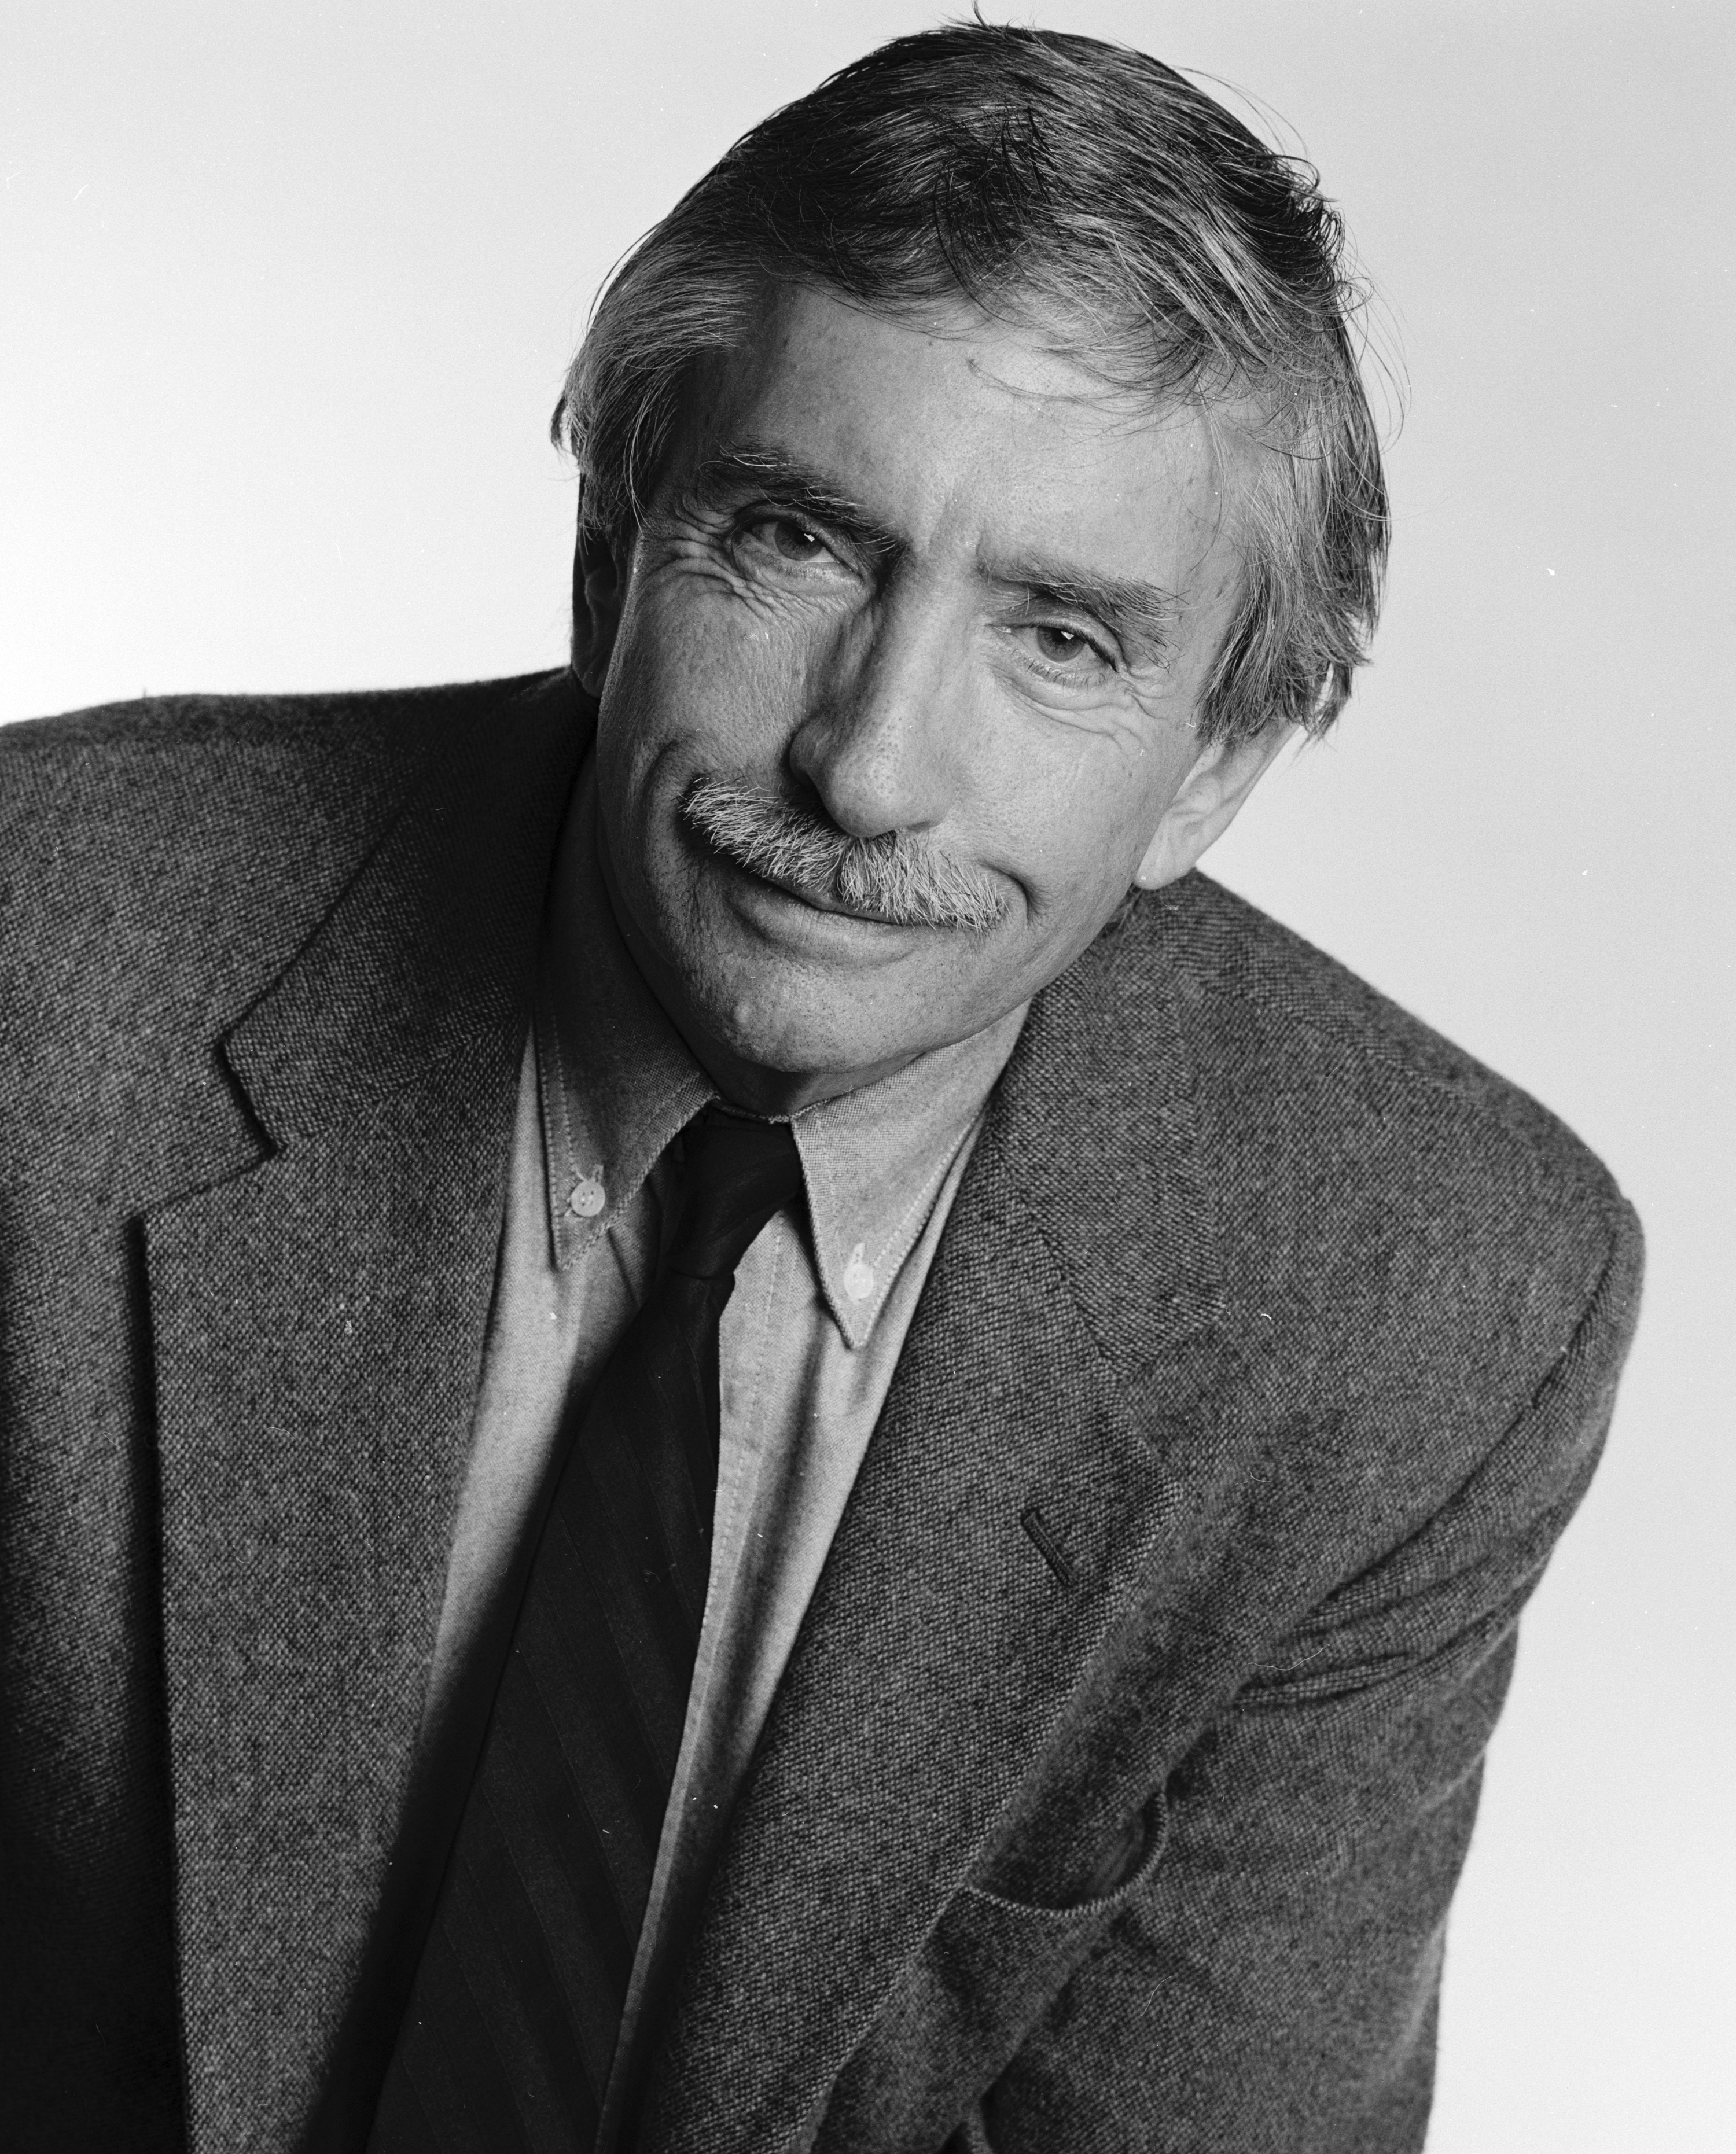 Albee, shown here in 1995, won Pulitzer Prizes for A Delicate Balance, Seascape and Three Tall Women and Tony awards for Who's Afraid of Virginia Woolf? and The Goat, or Who Is Sylvia? Jack Mitchell/Getty Images